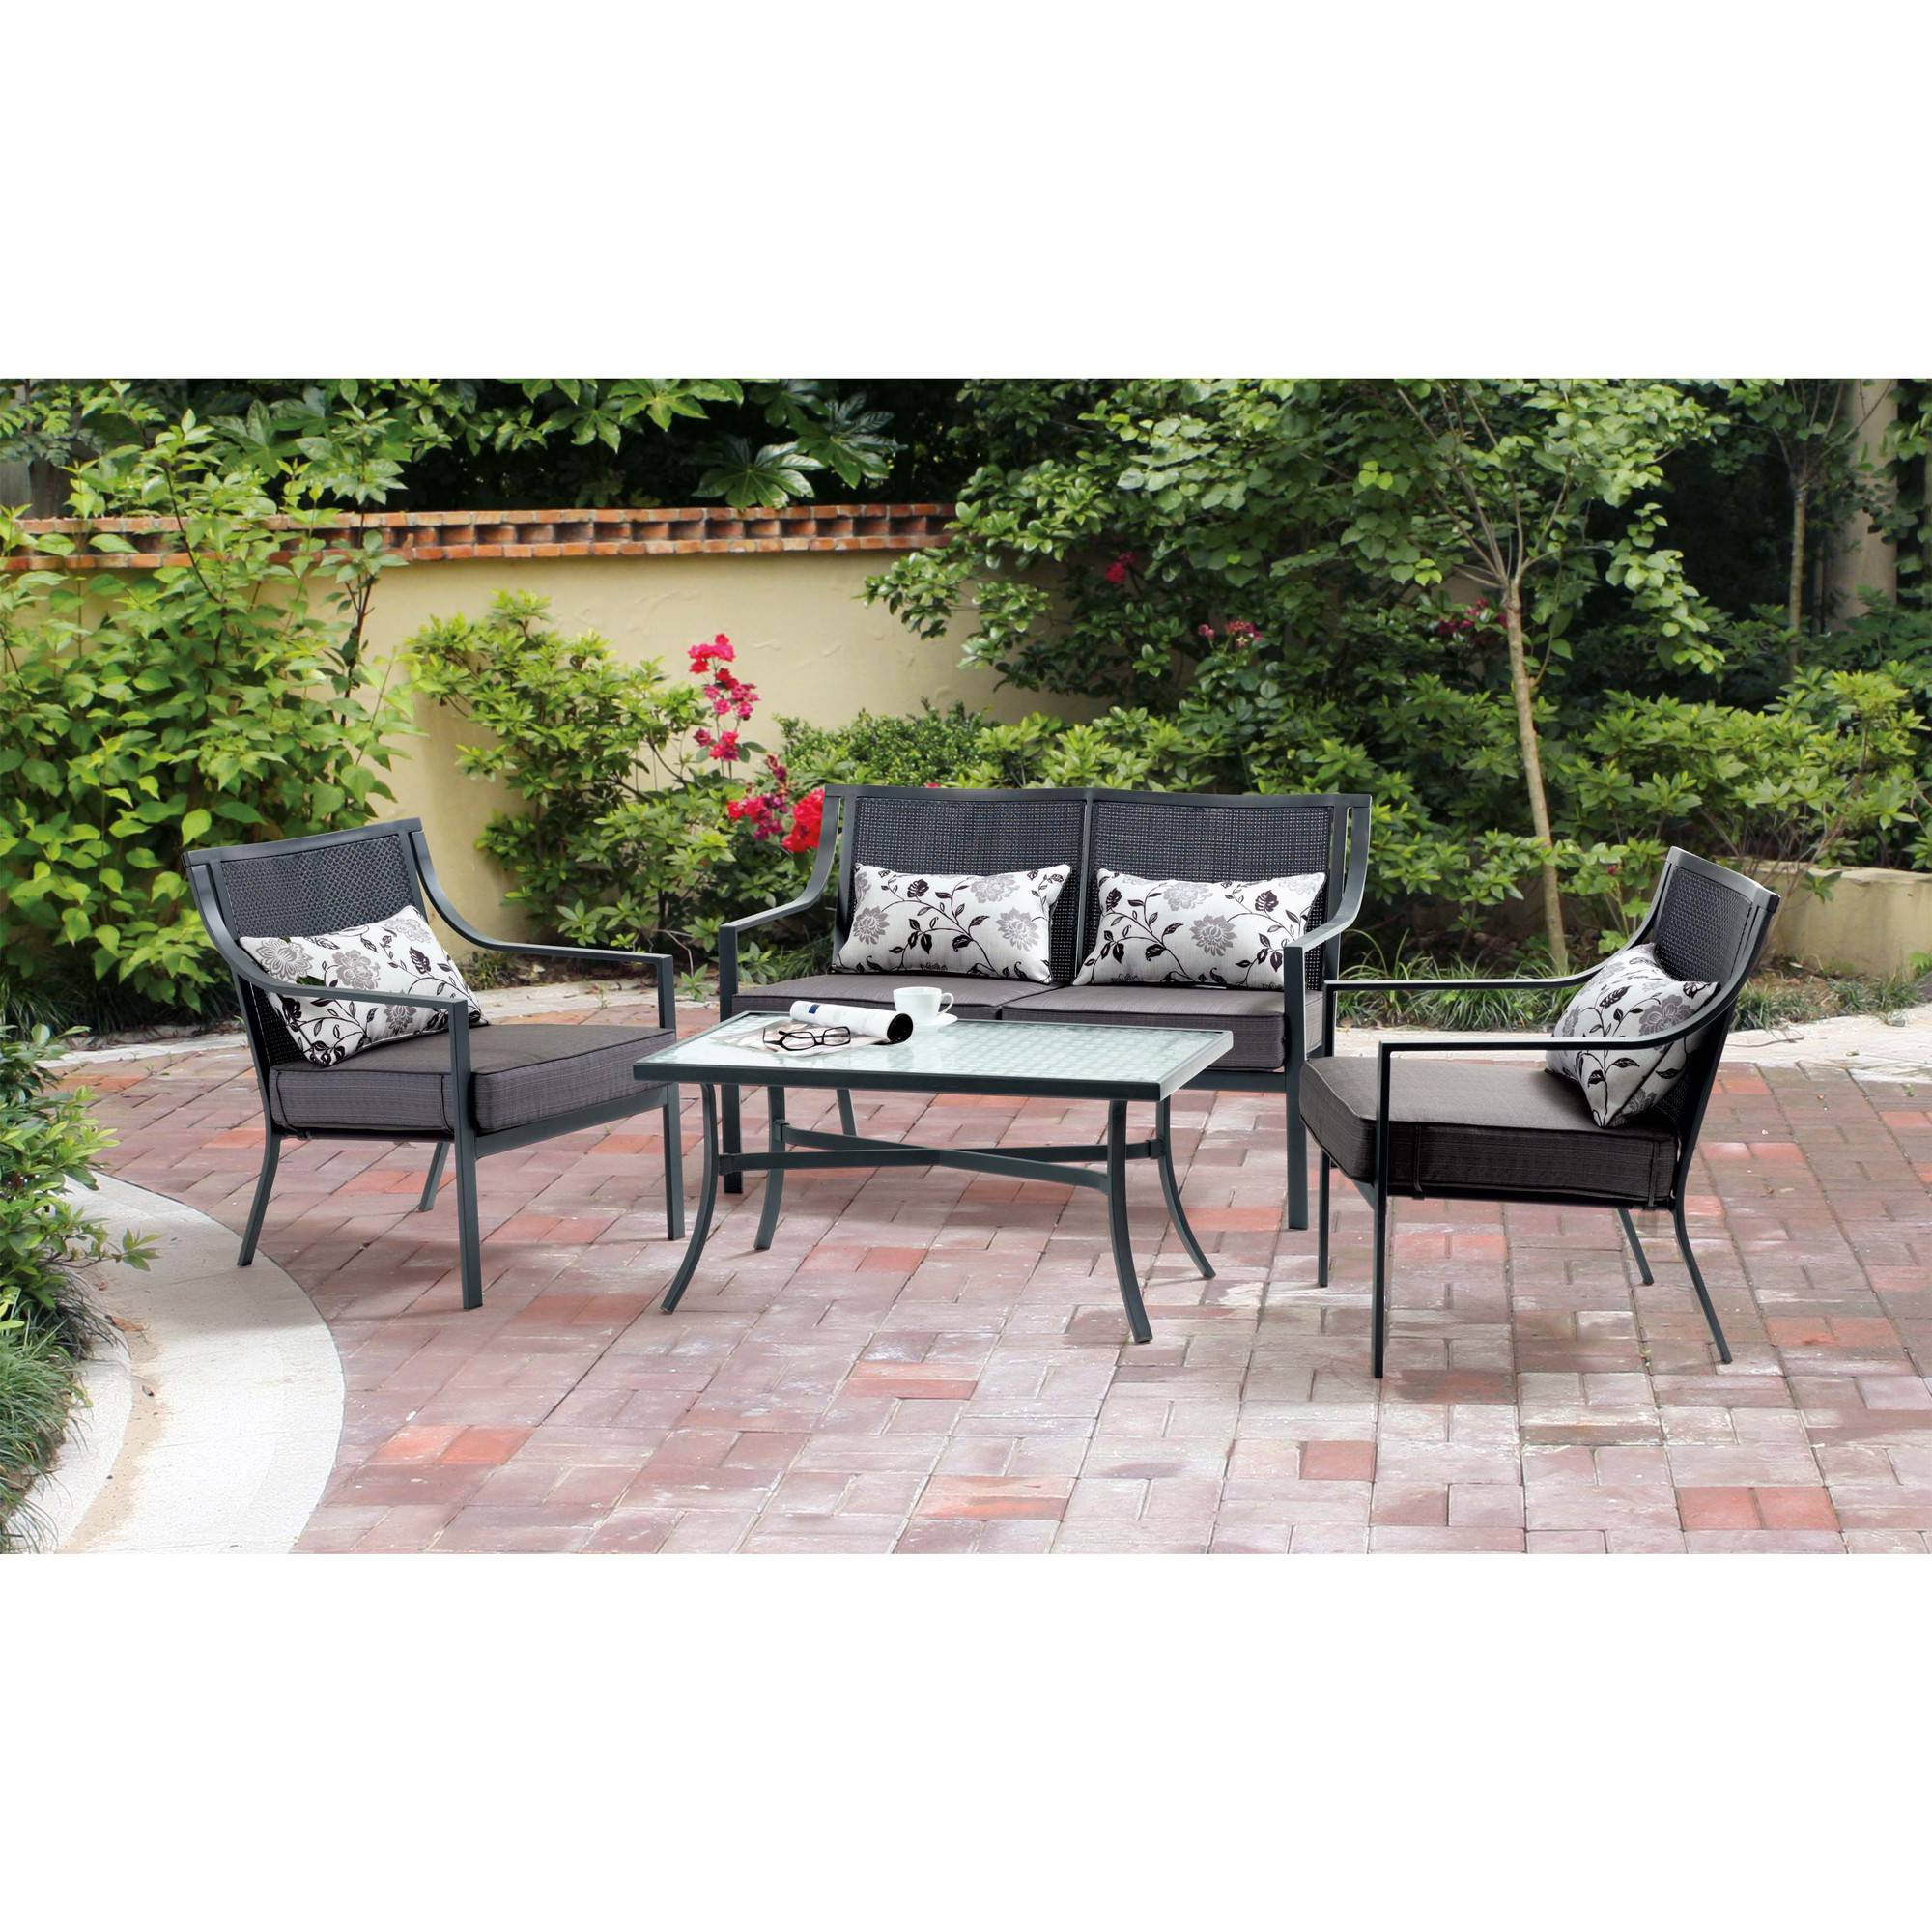 Mainstays Alexandra Square 4-Piece Patio Conversation Set, Grey